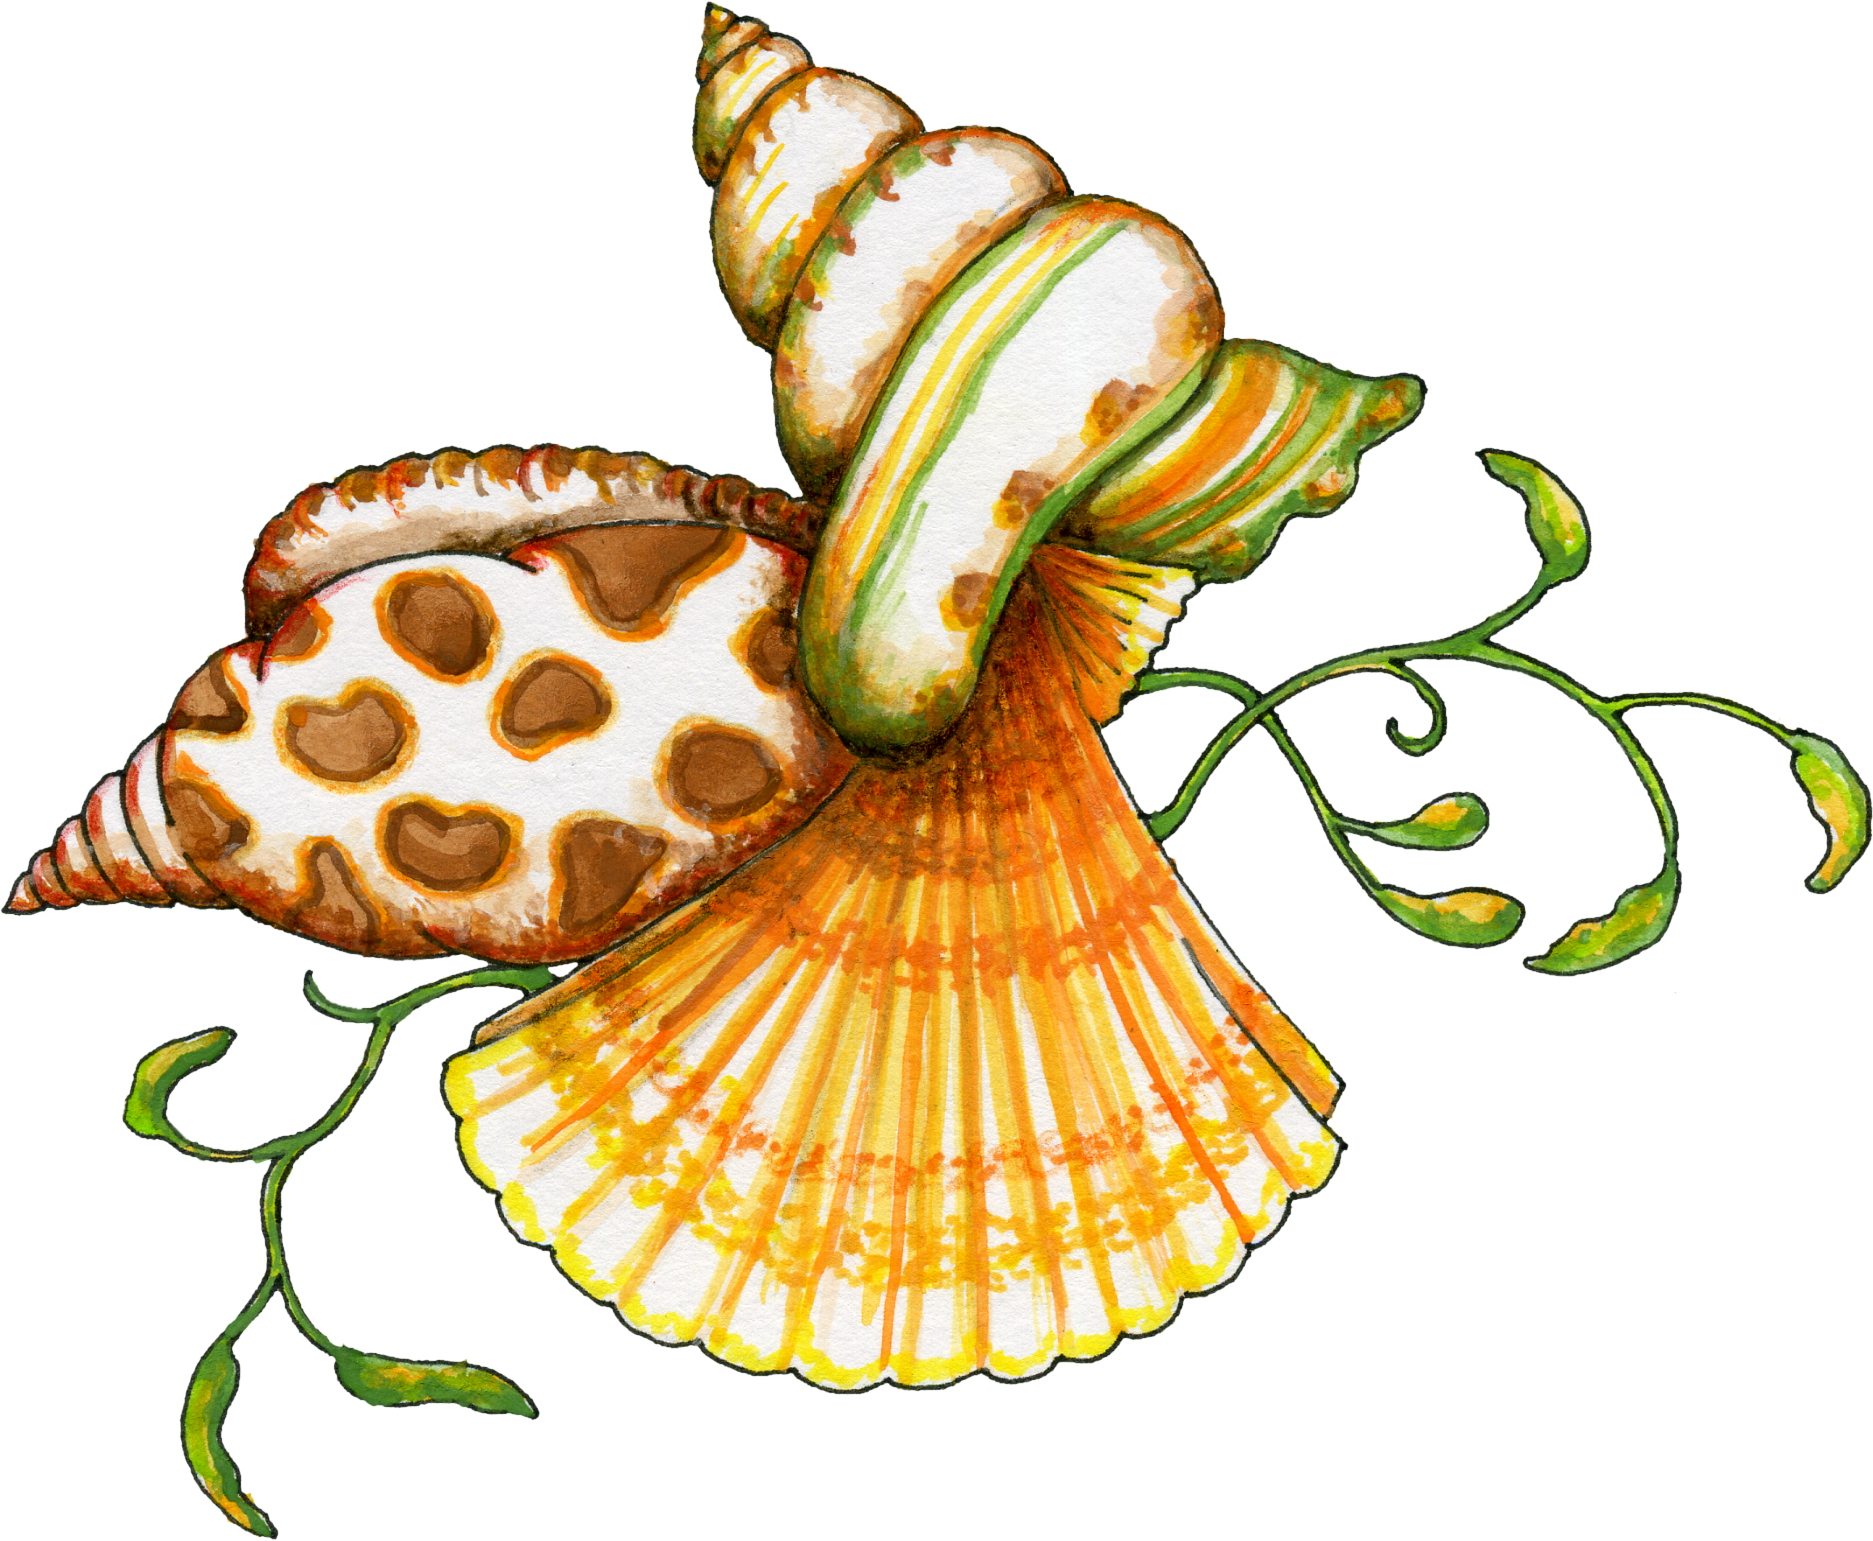 Free Download Seashell Png Images image #24619